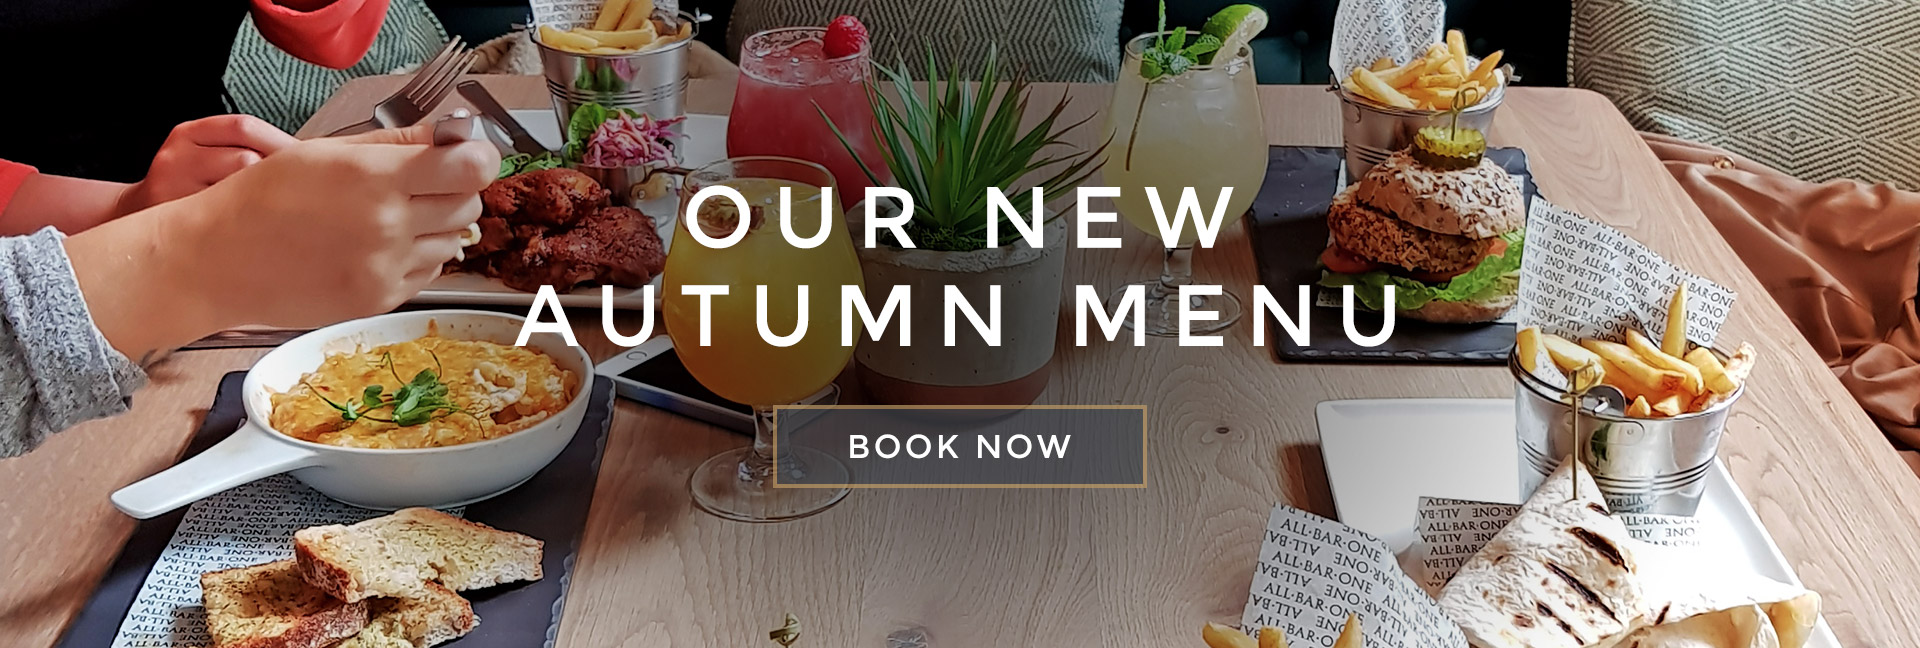 Our new Autumn menu at All Bar One Worcester - Book now